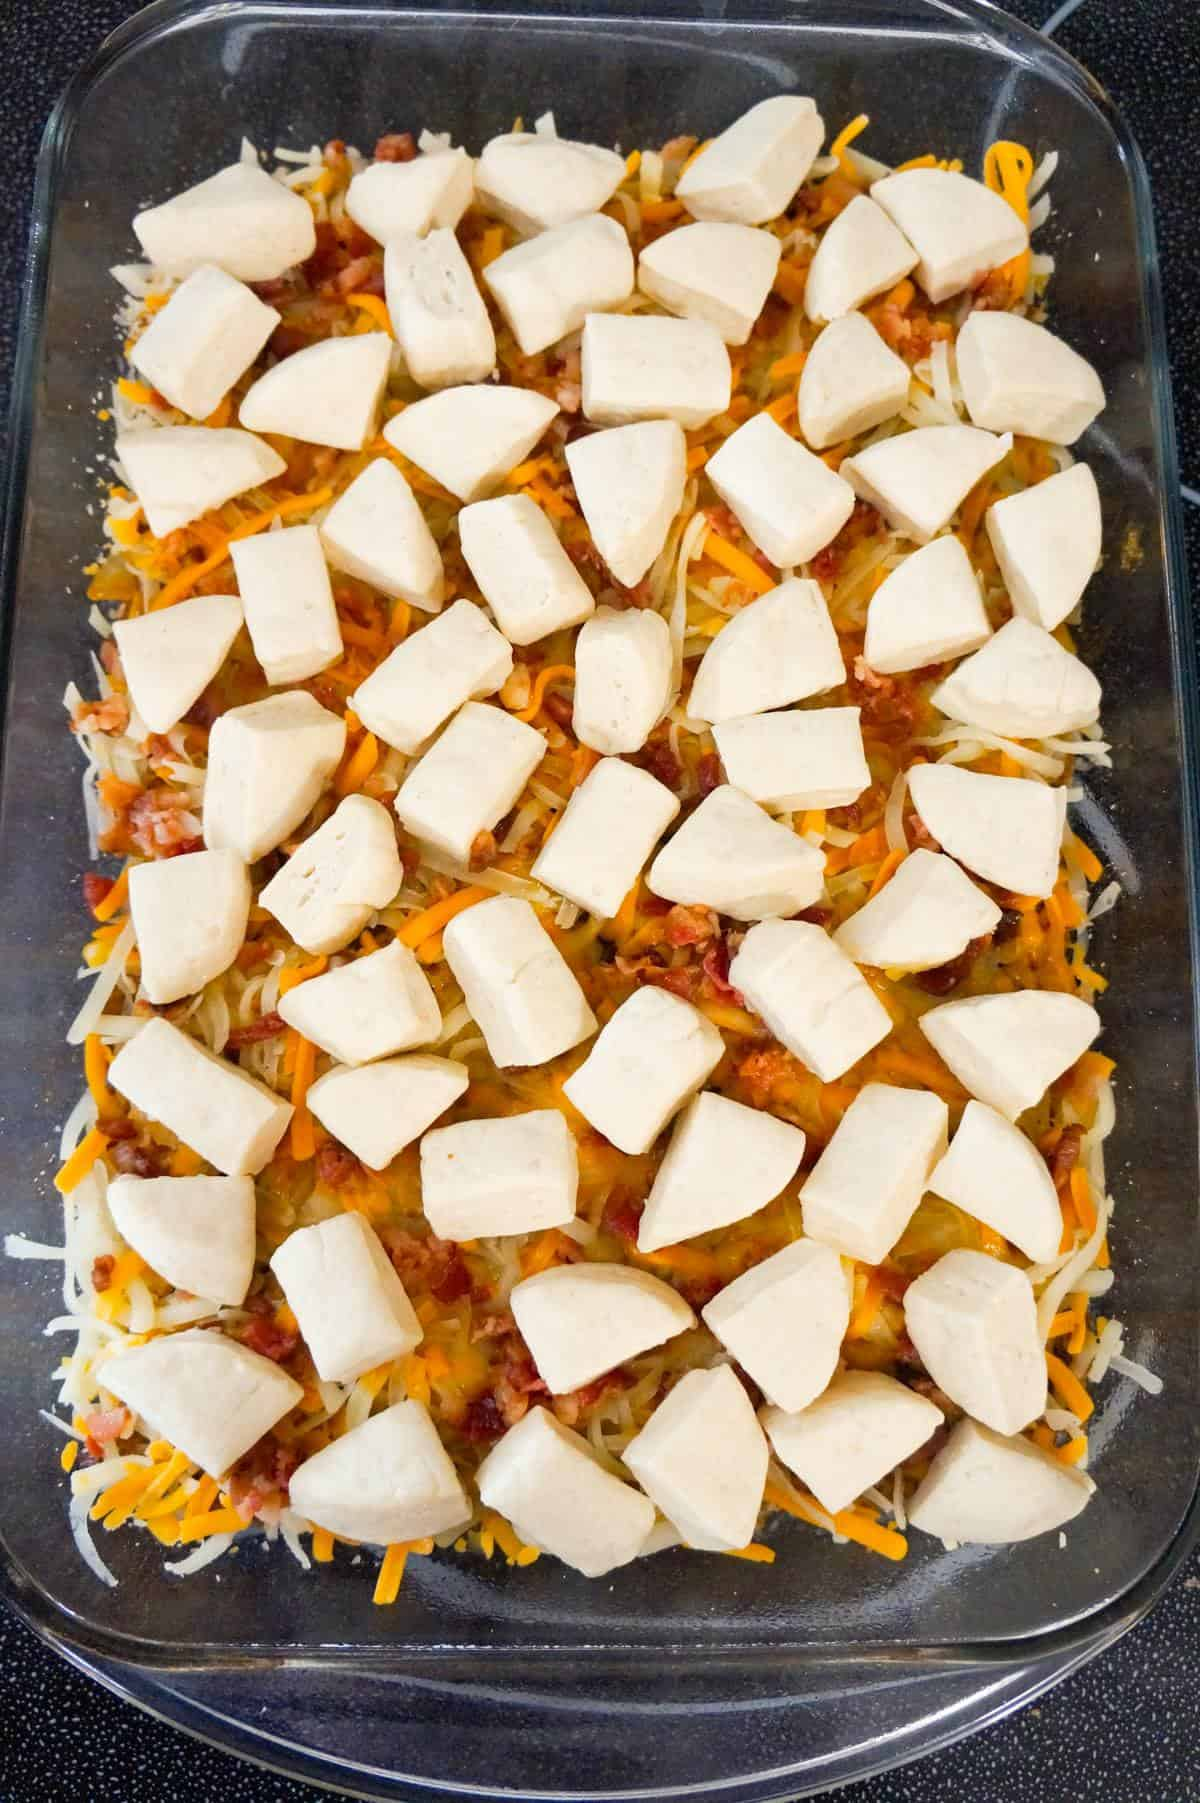 Pillsbury biscuit dough pieces on top of bacon cheeseburger casserole before baking